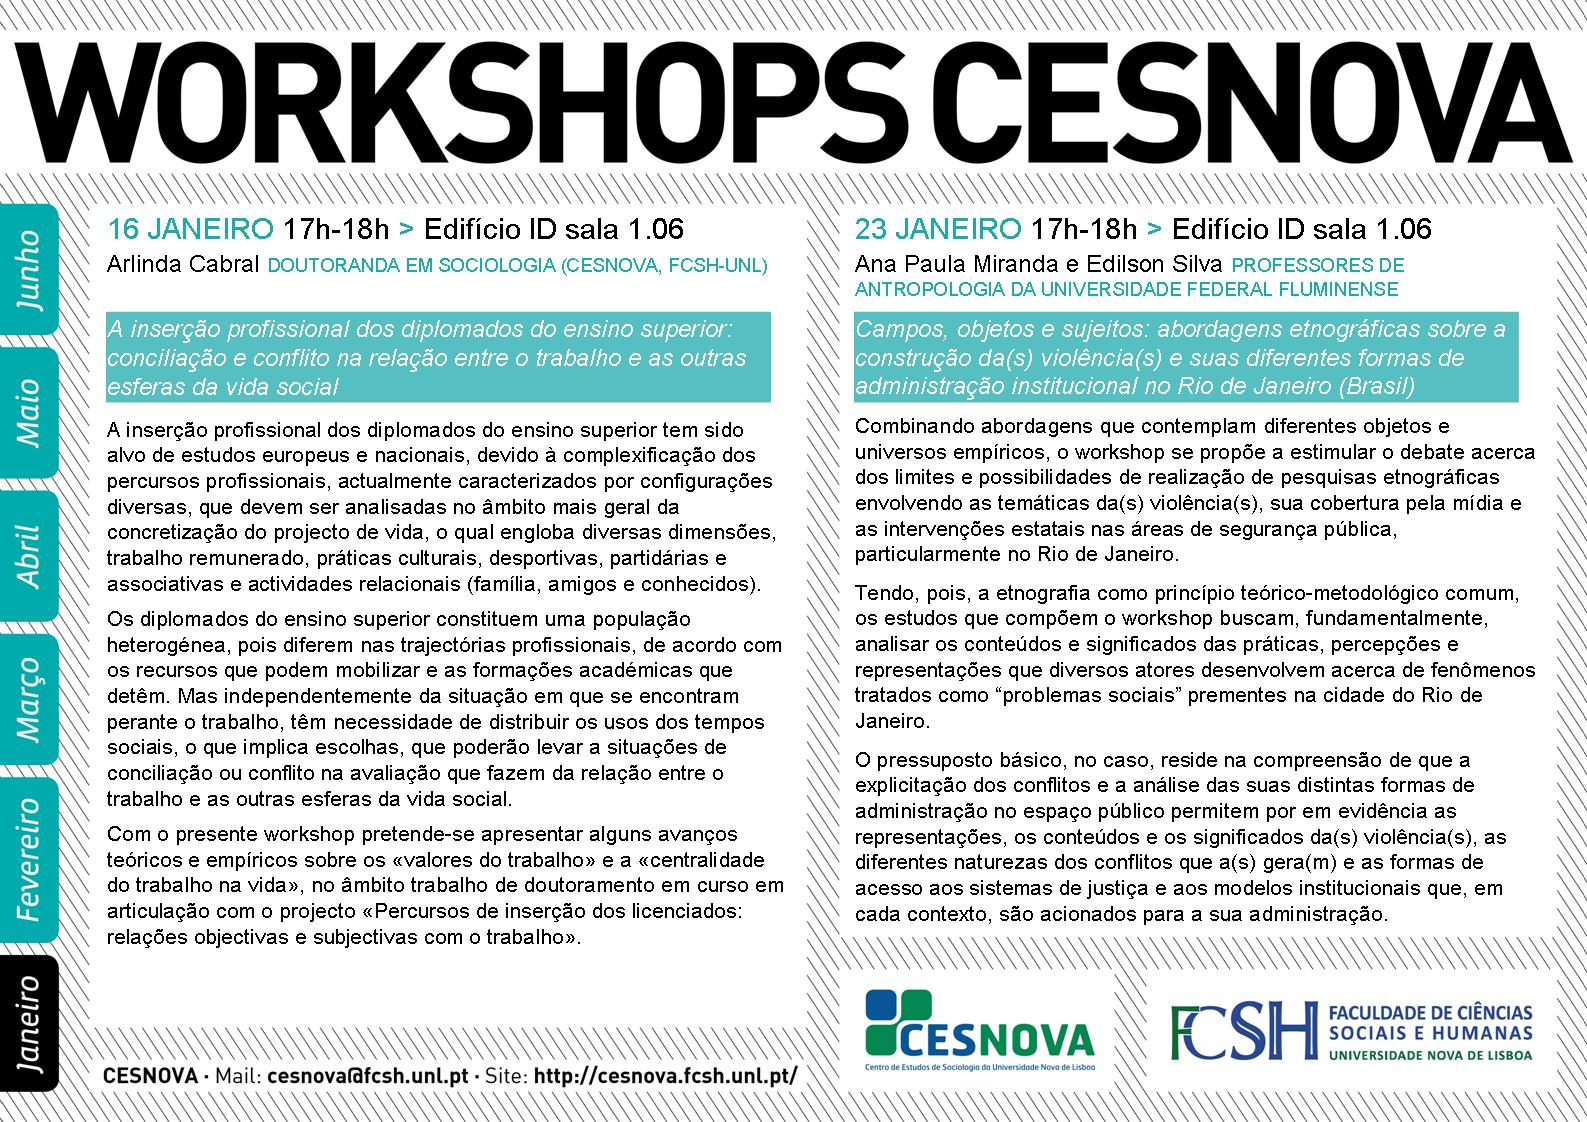 Workshop CesNova